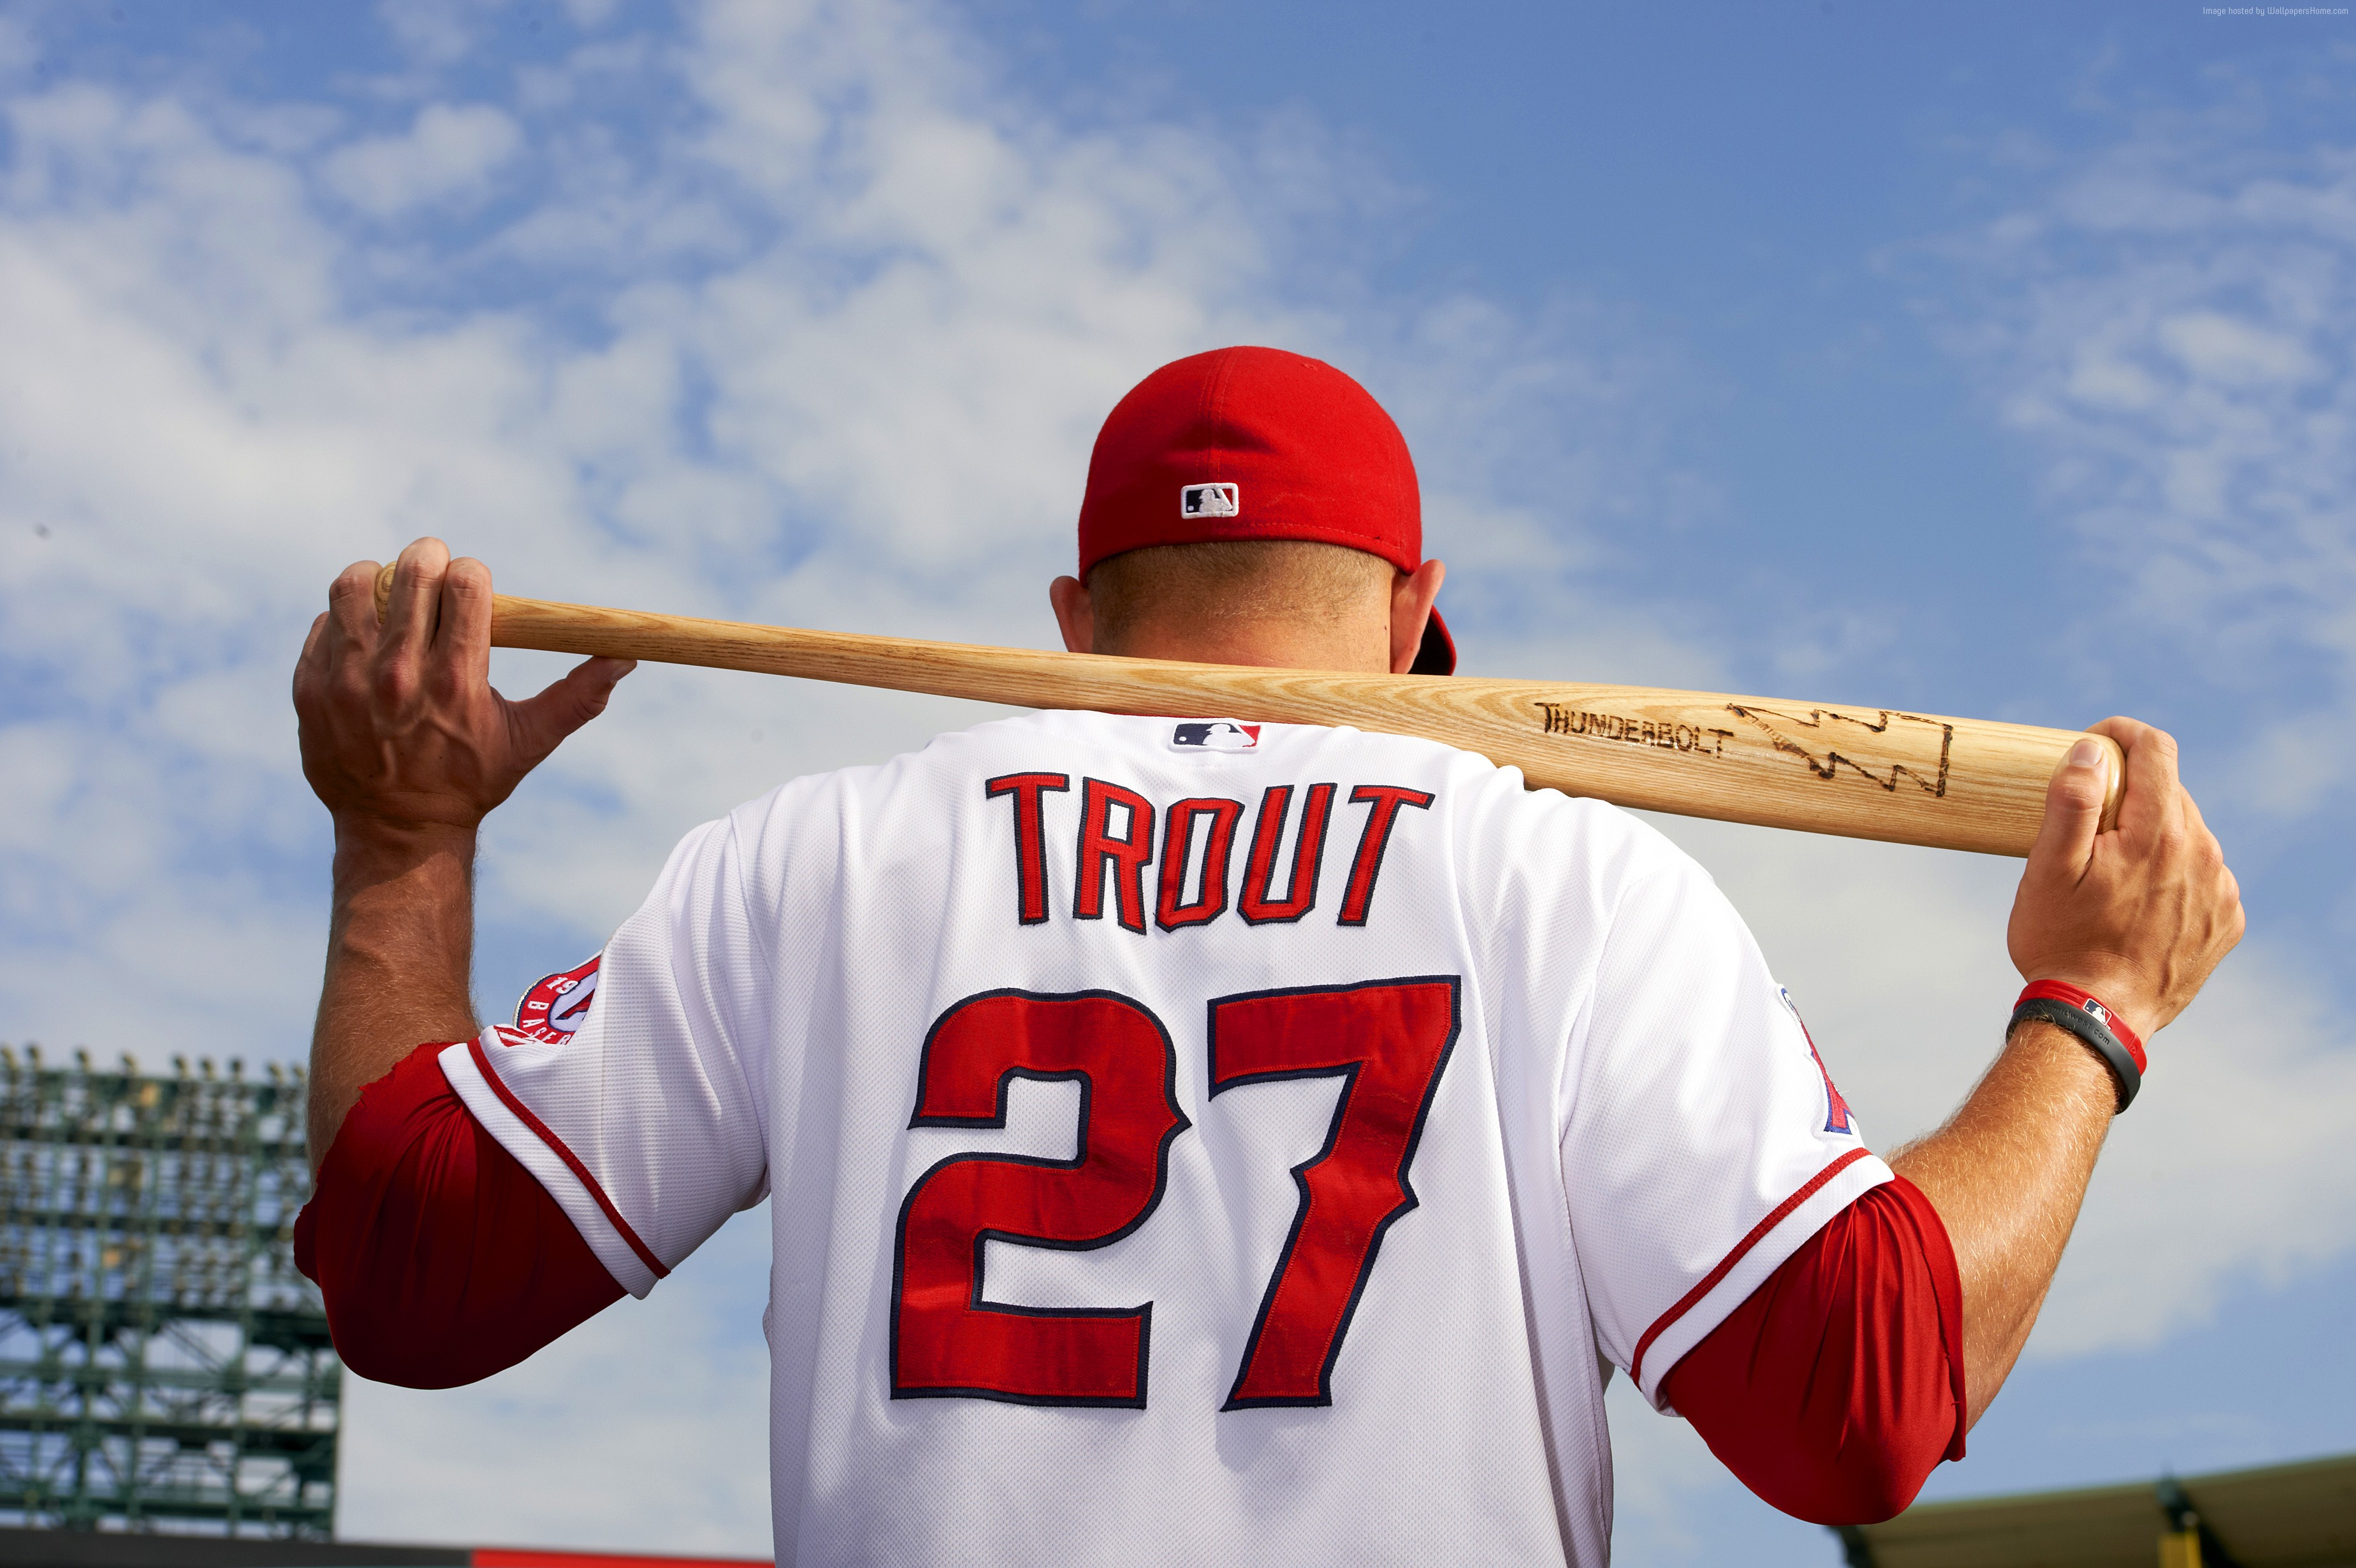 Sport Wallpaper Iphone 6: Mike Trout Wallpaper IPhone